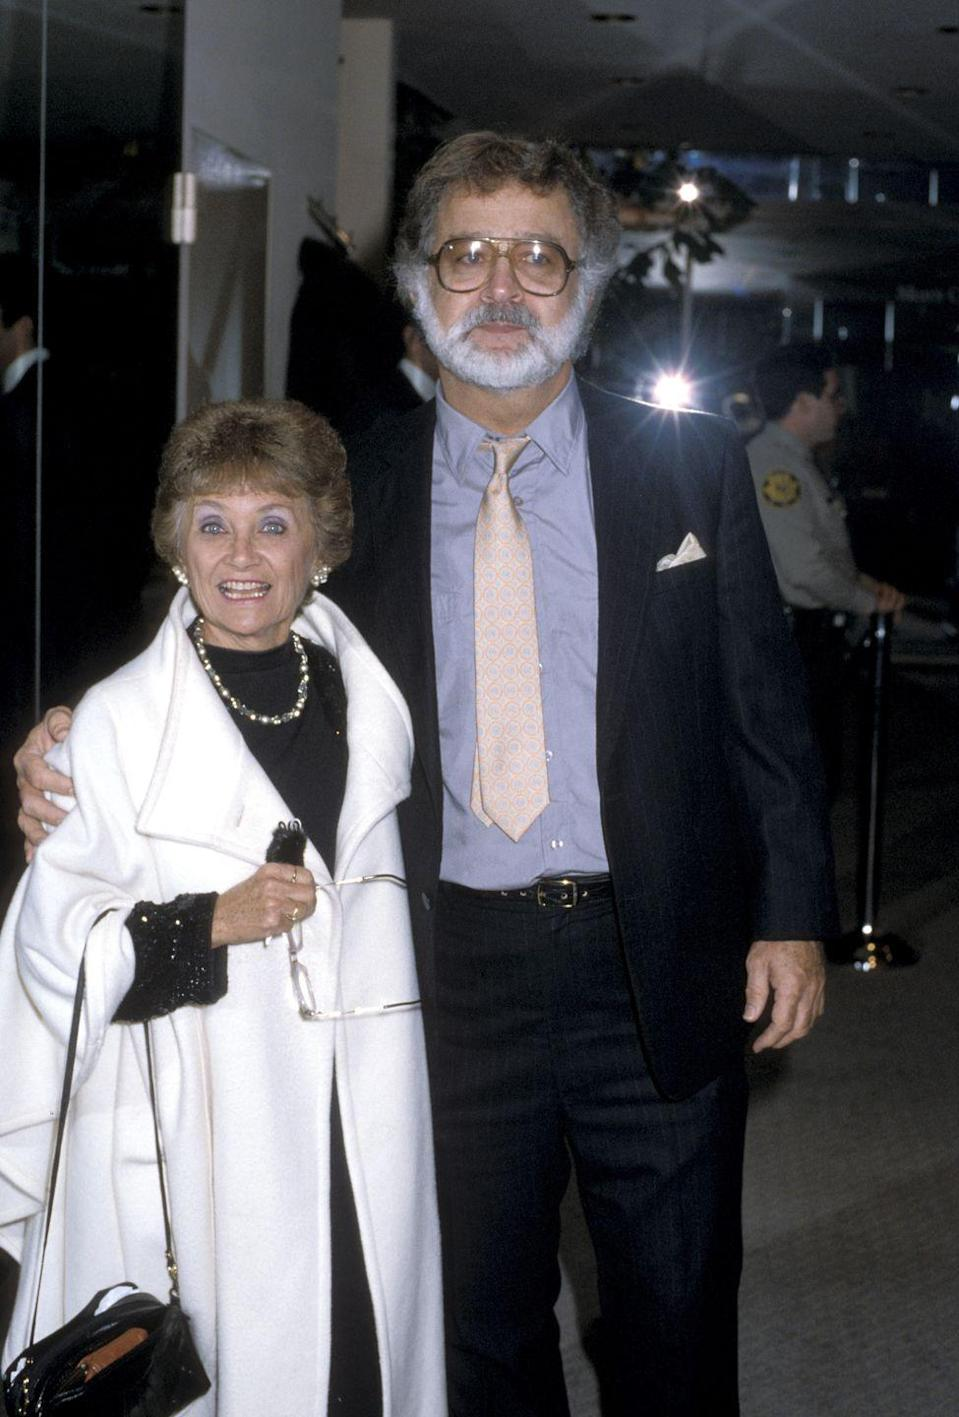 <p>Out of Sophia garb, she's got style and isn't telling stories about Italy. Here she is at an AIDS Fashion Show with actor Brian Maggart. Fun fact: Maggart is Fiona Apple's father. </p>